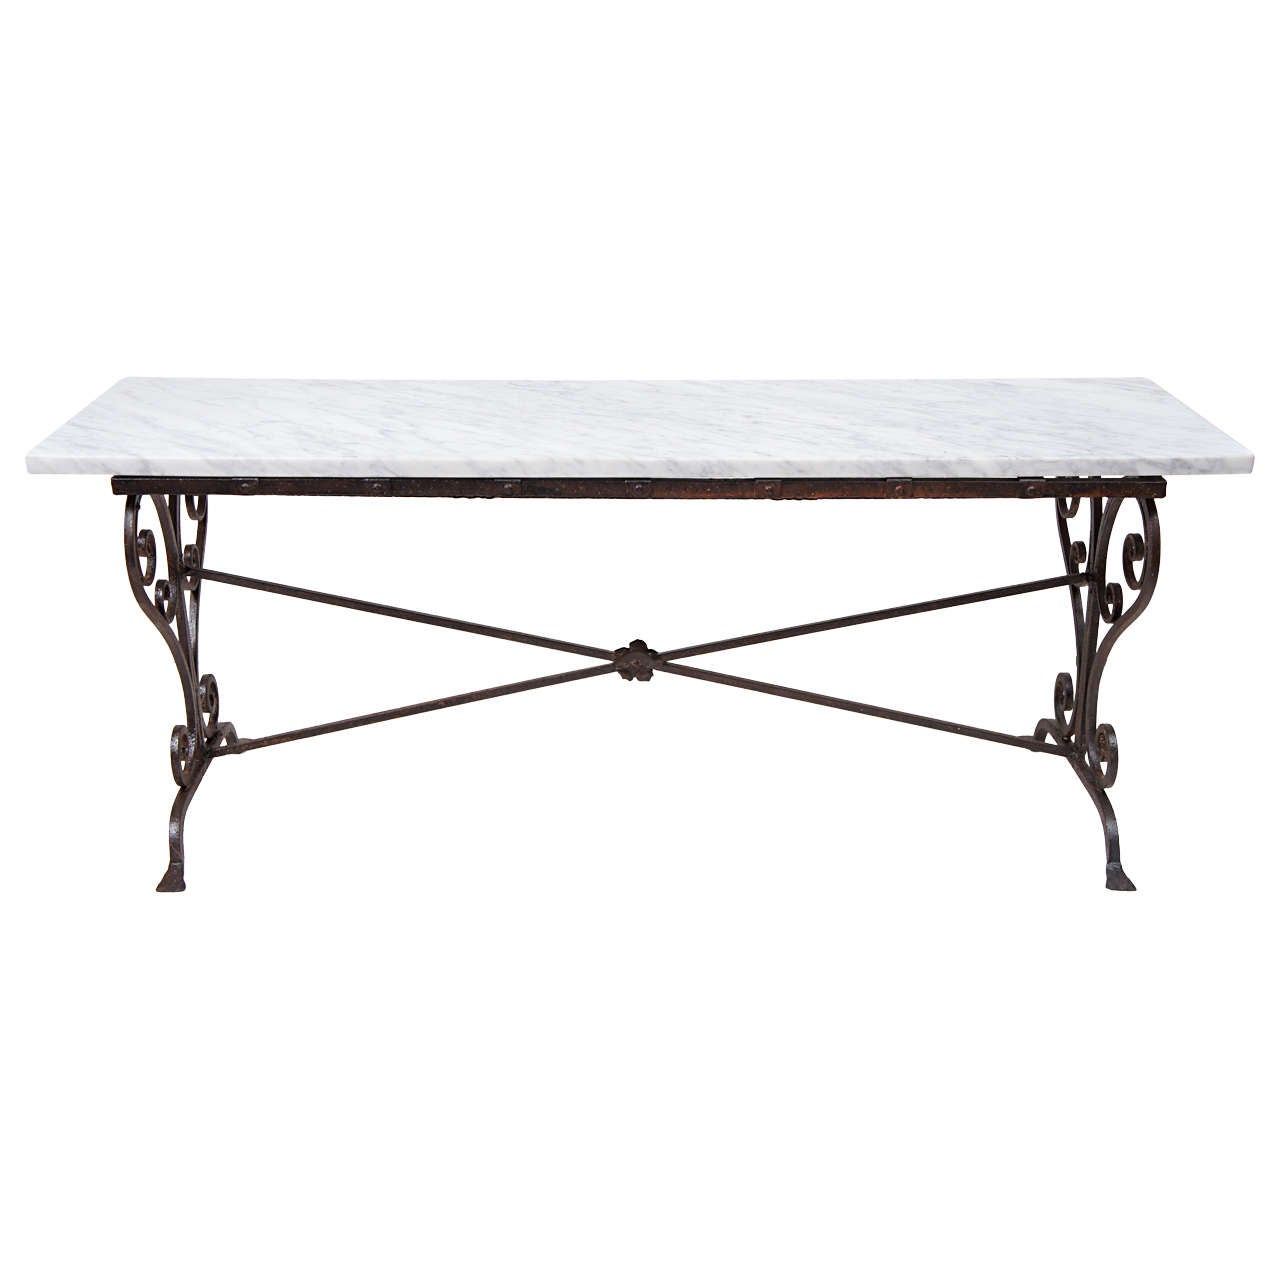 Antique Wrought Iron Marble Coffee Table For